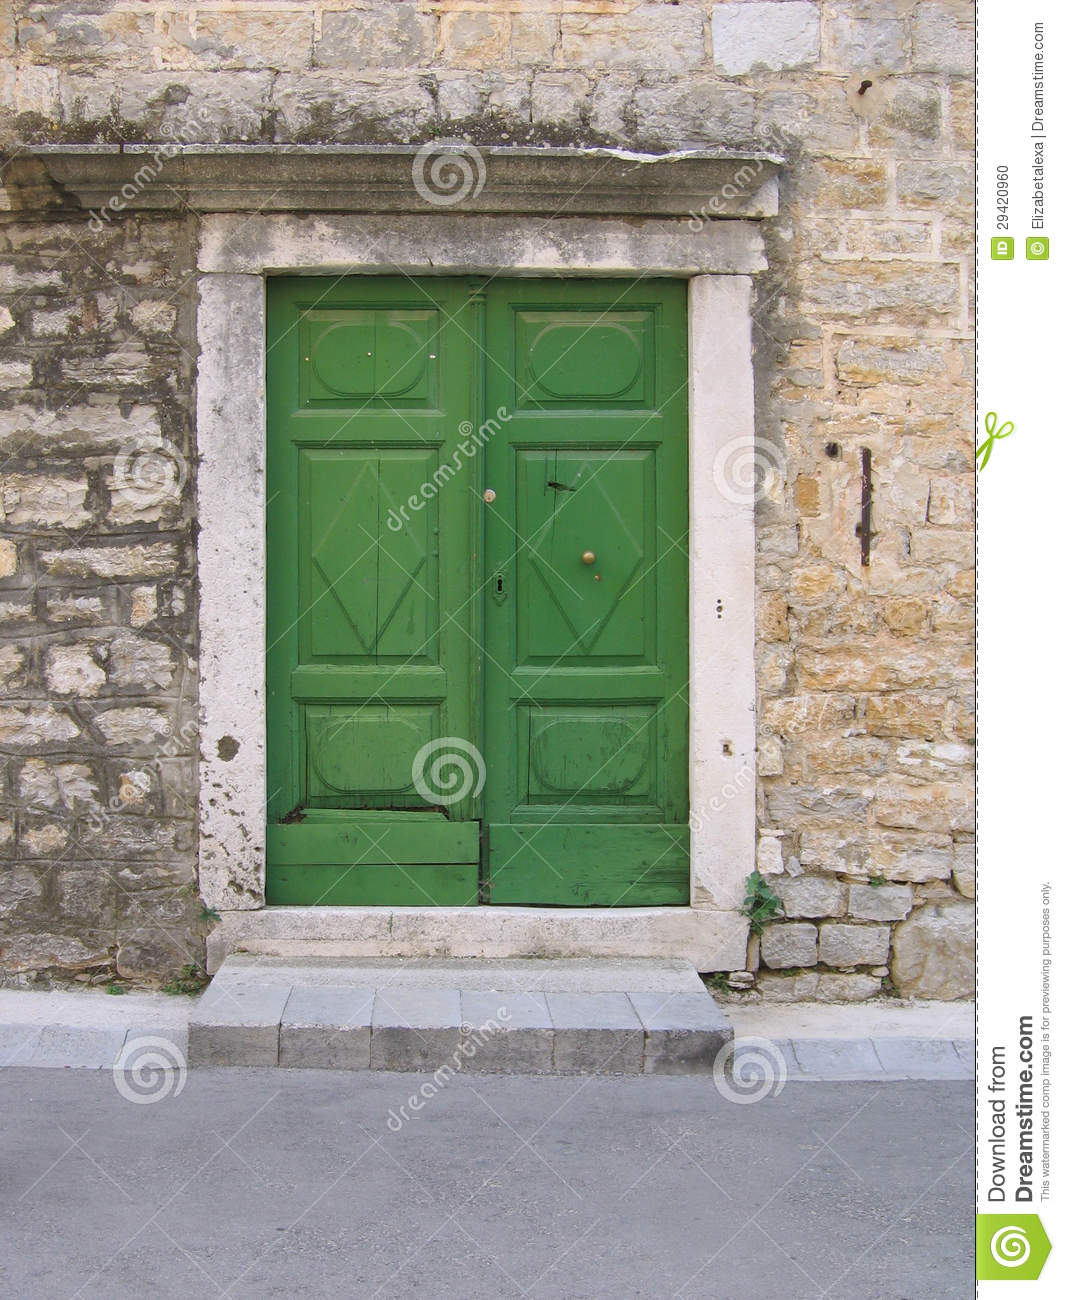 1300 #81A229 Old Green Mediterranean Doors Stock Photo Image: 29420960 image Mediterranean Style Entry Doors 39631065